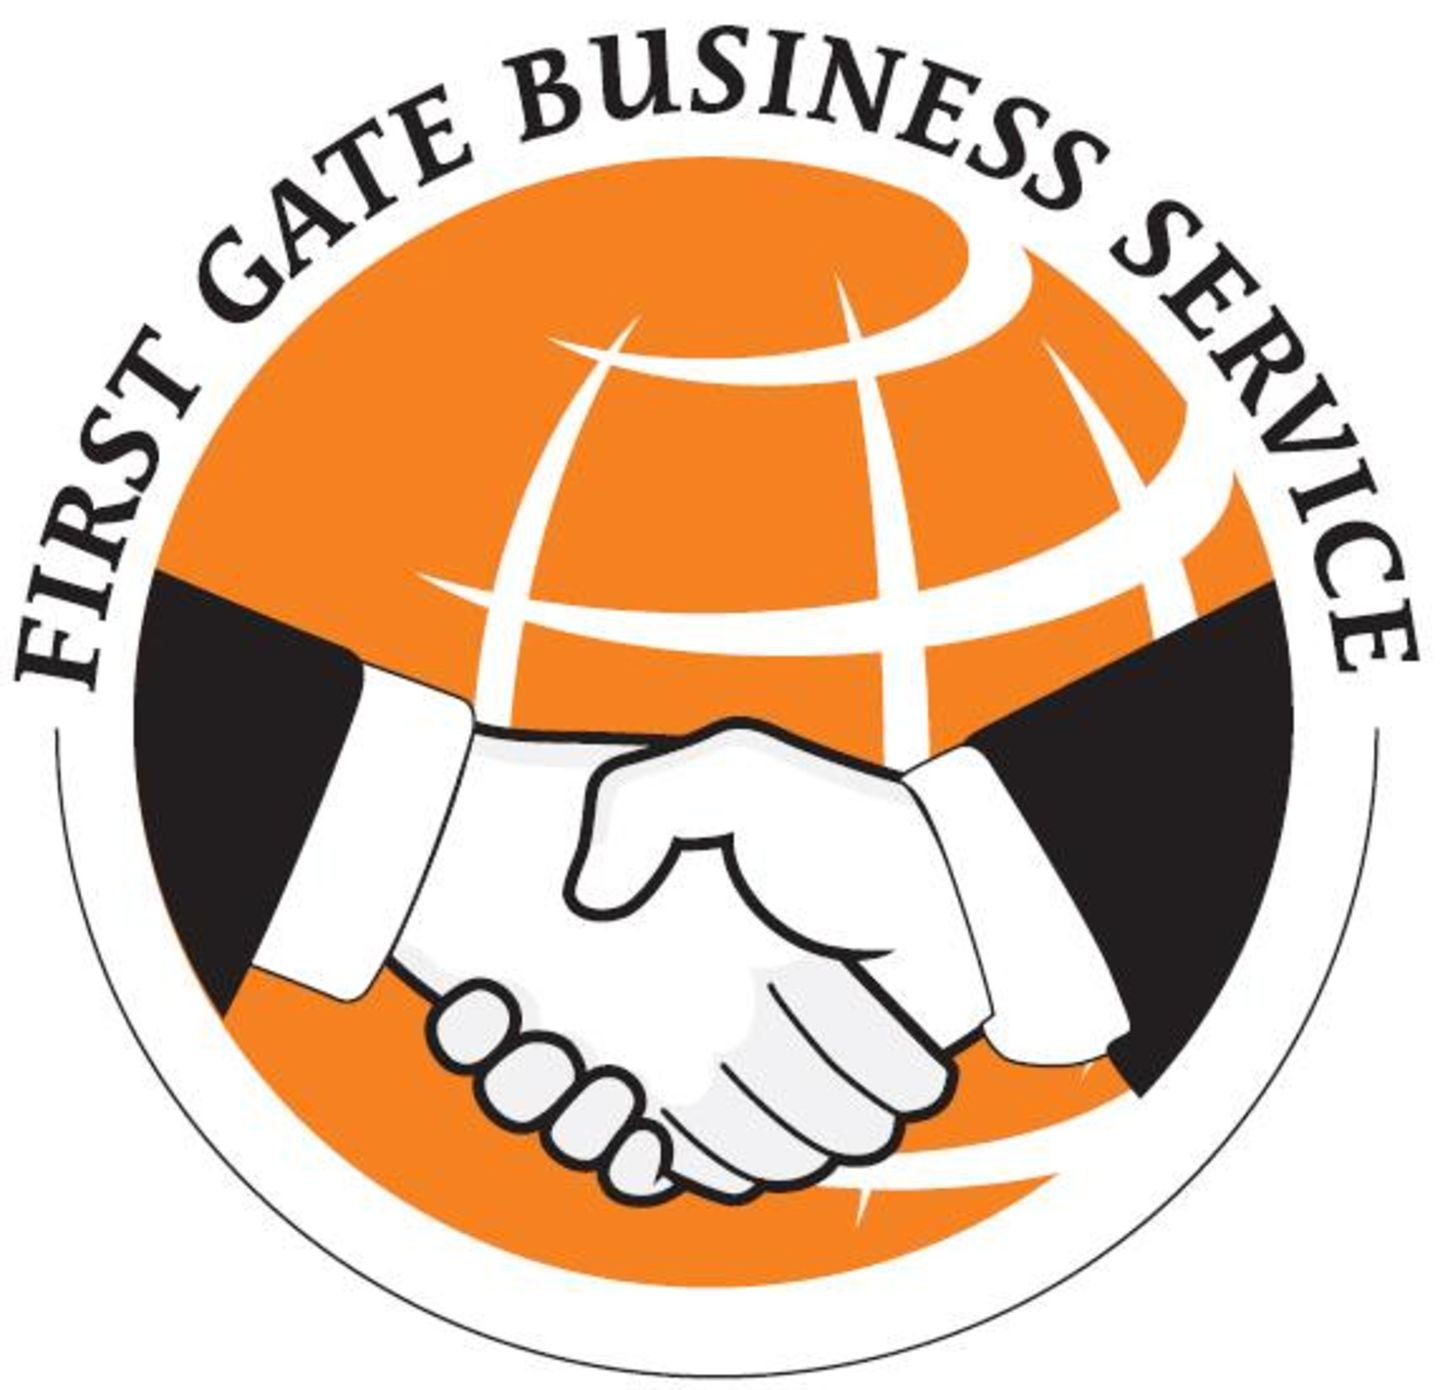 HiDubai-business-first-gate-business-service-government-public-services-printing-typing-services-al-nahda-2-dubai-2